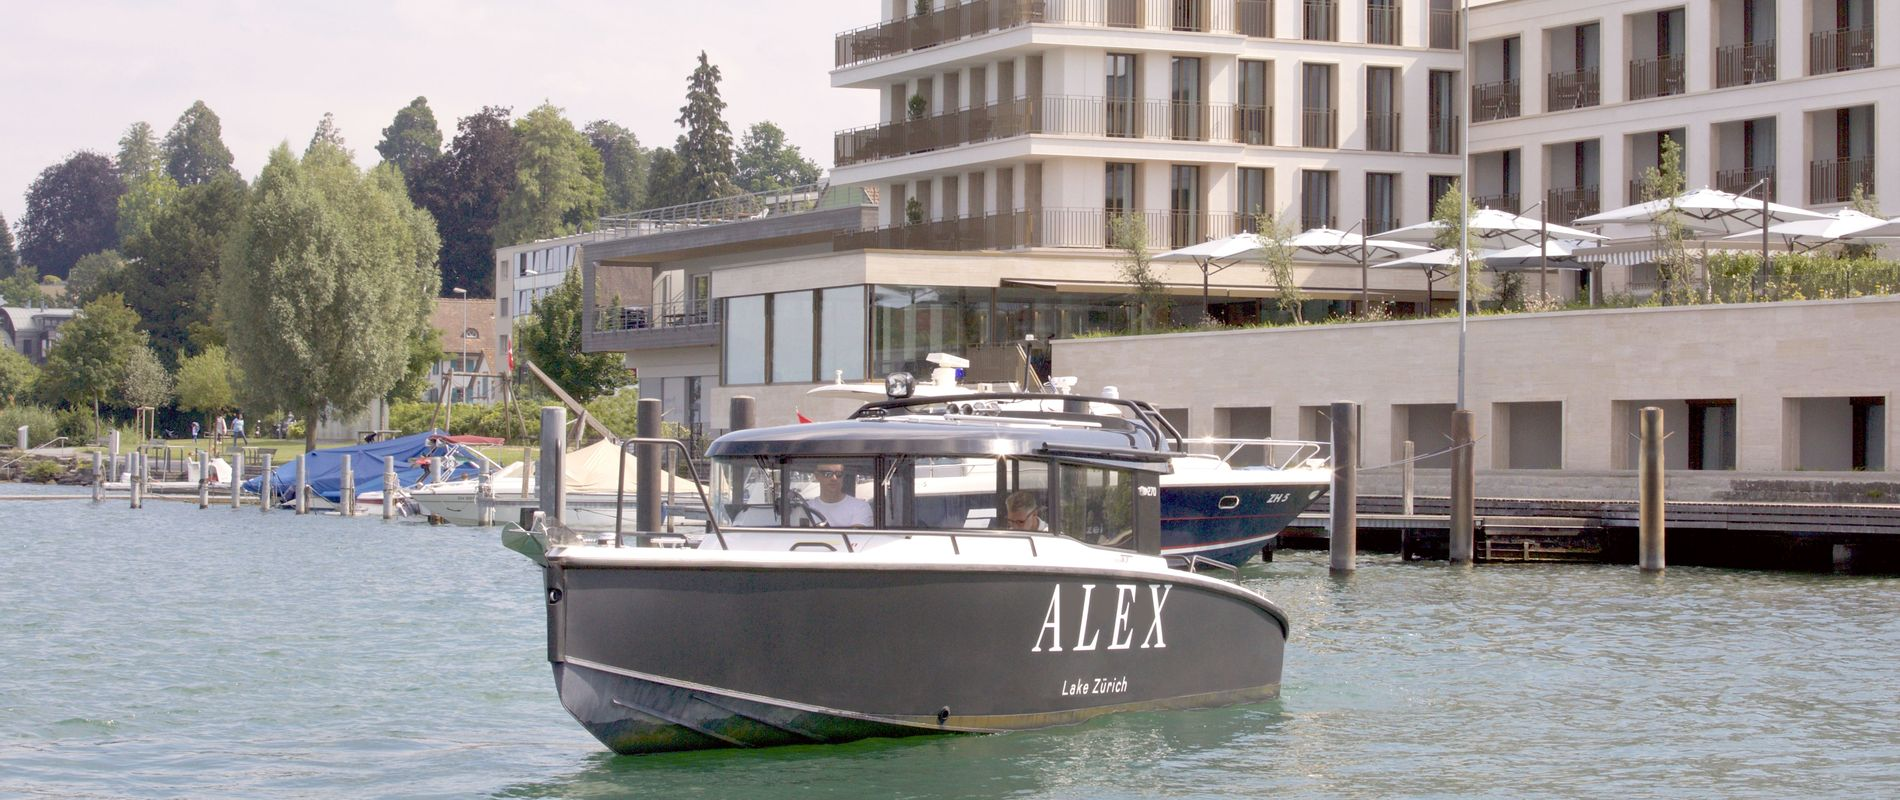 Alex Lake Zurich